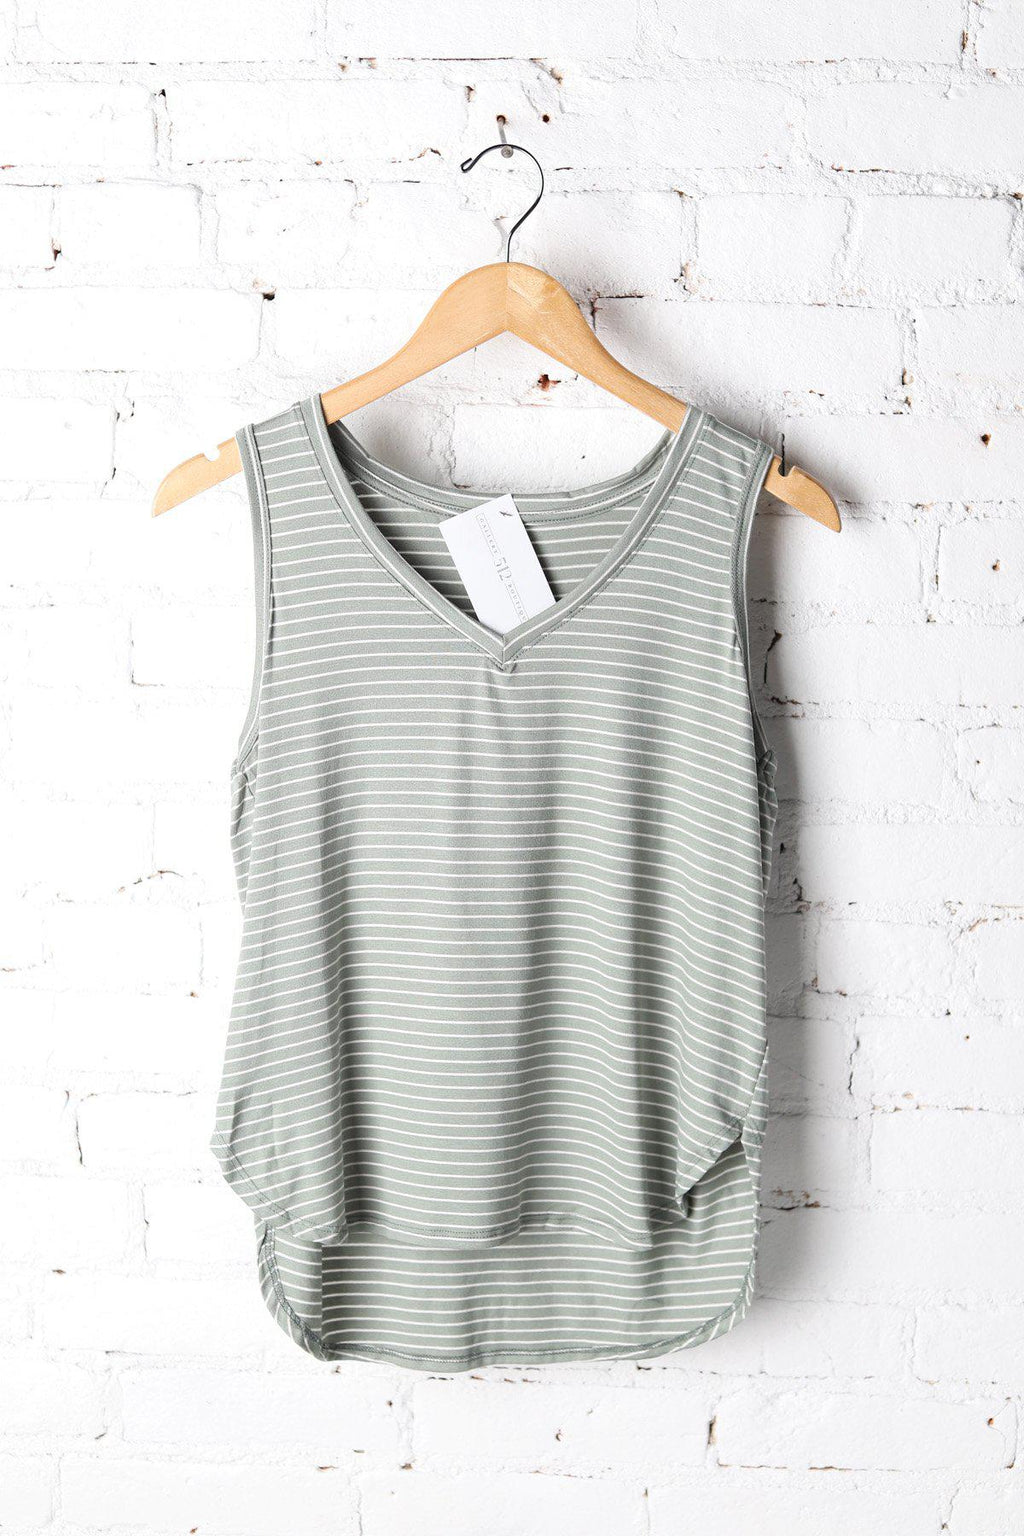 Syd Lt Olive Stripe Tank - Gallery 512 Boutique